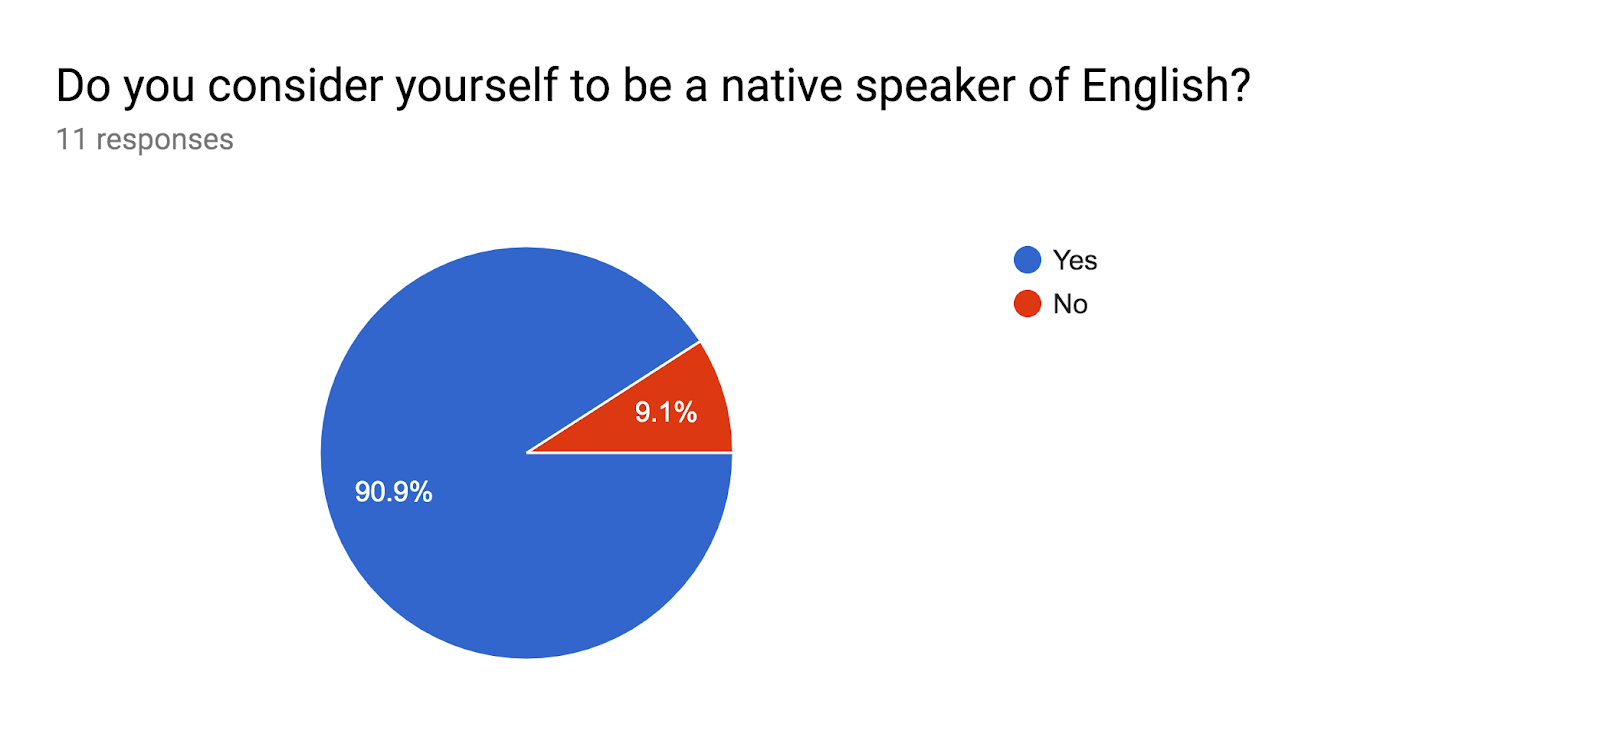 Forms response chart. Question title: Do you consider yourself to be a native speaker of English?. Number of responses: 11 responses.